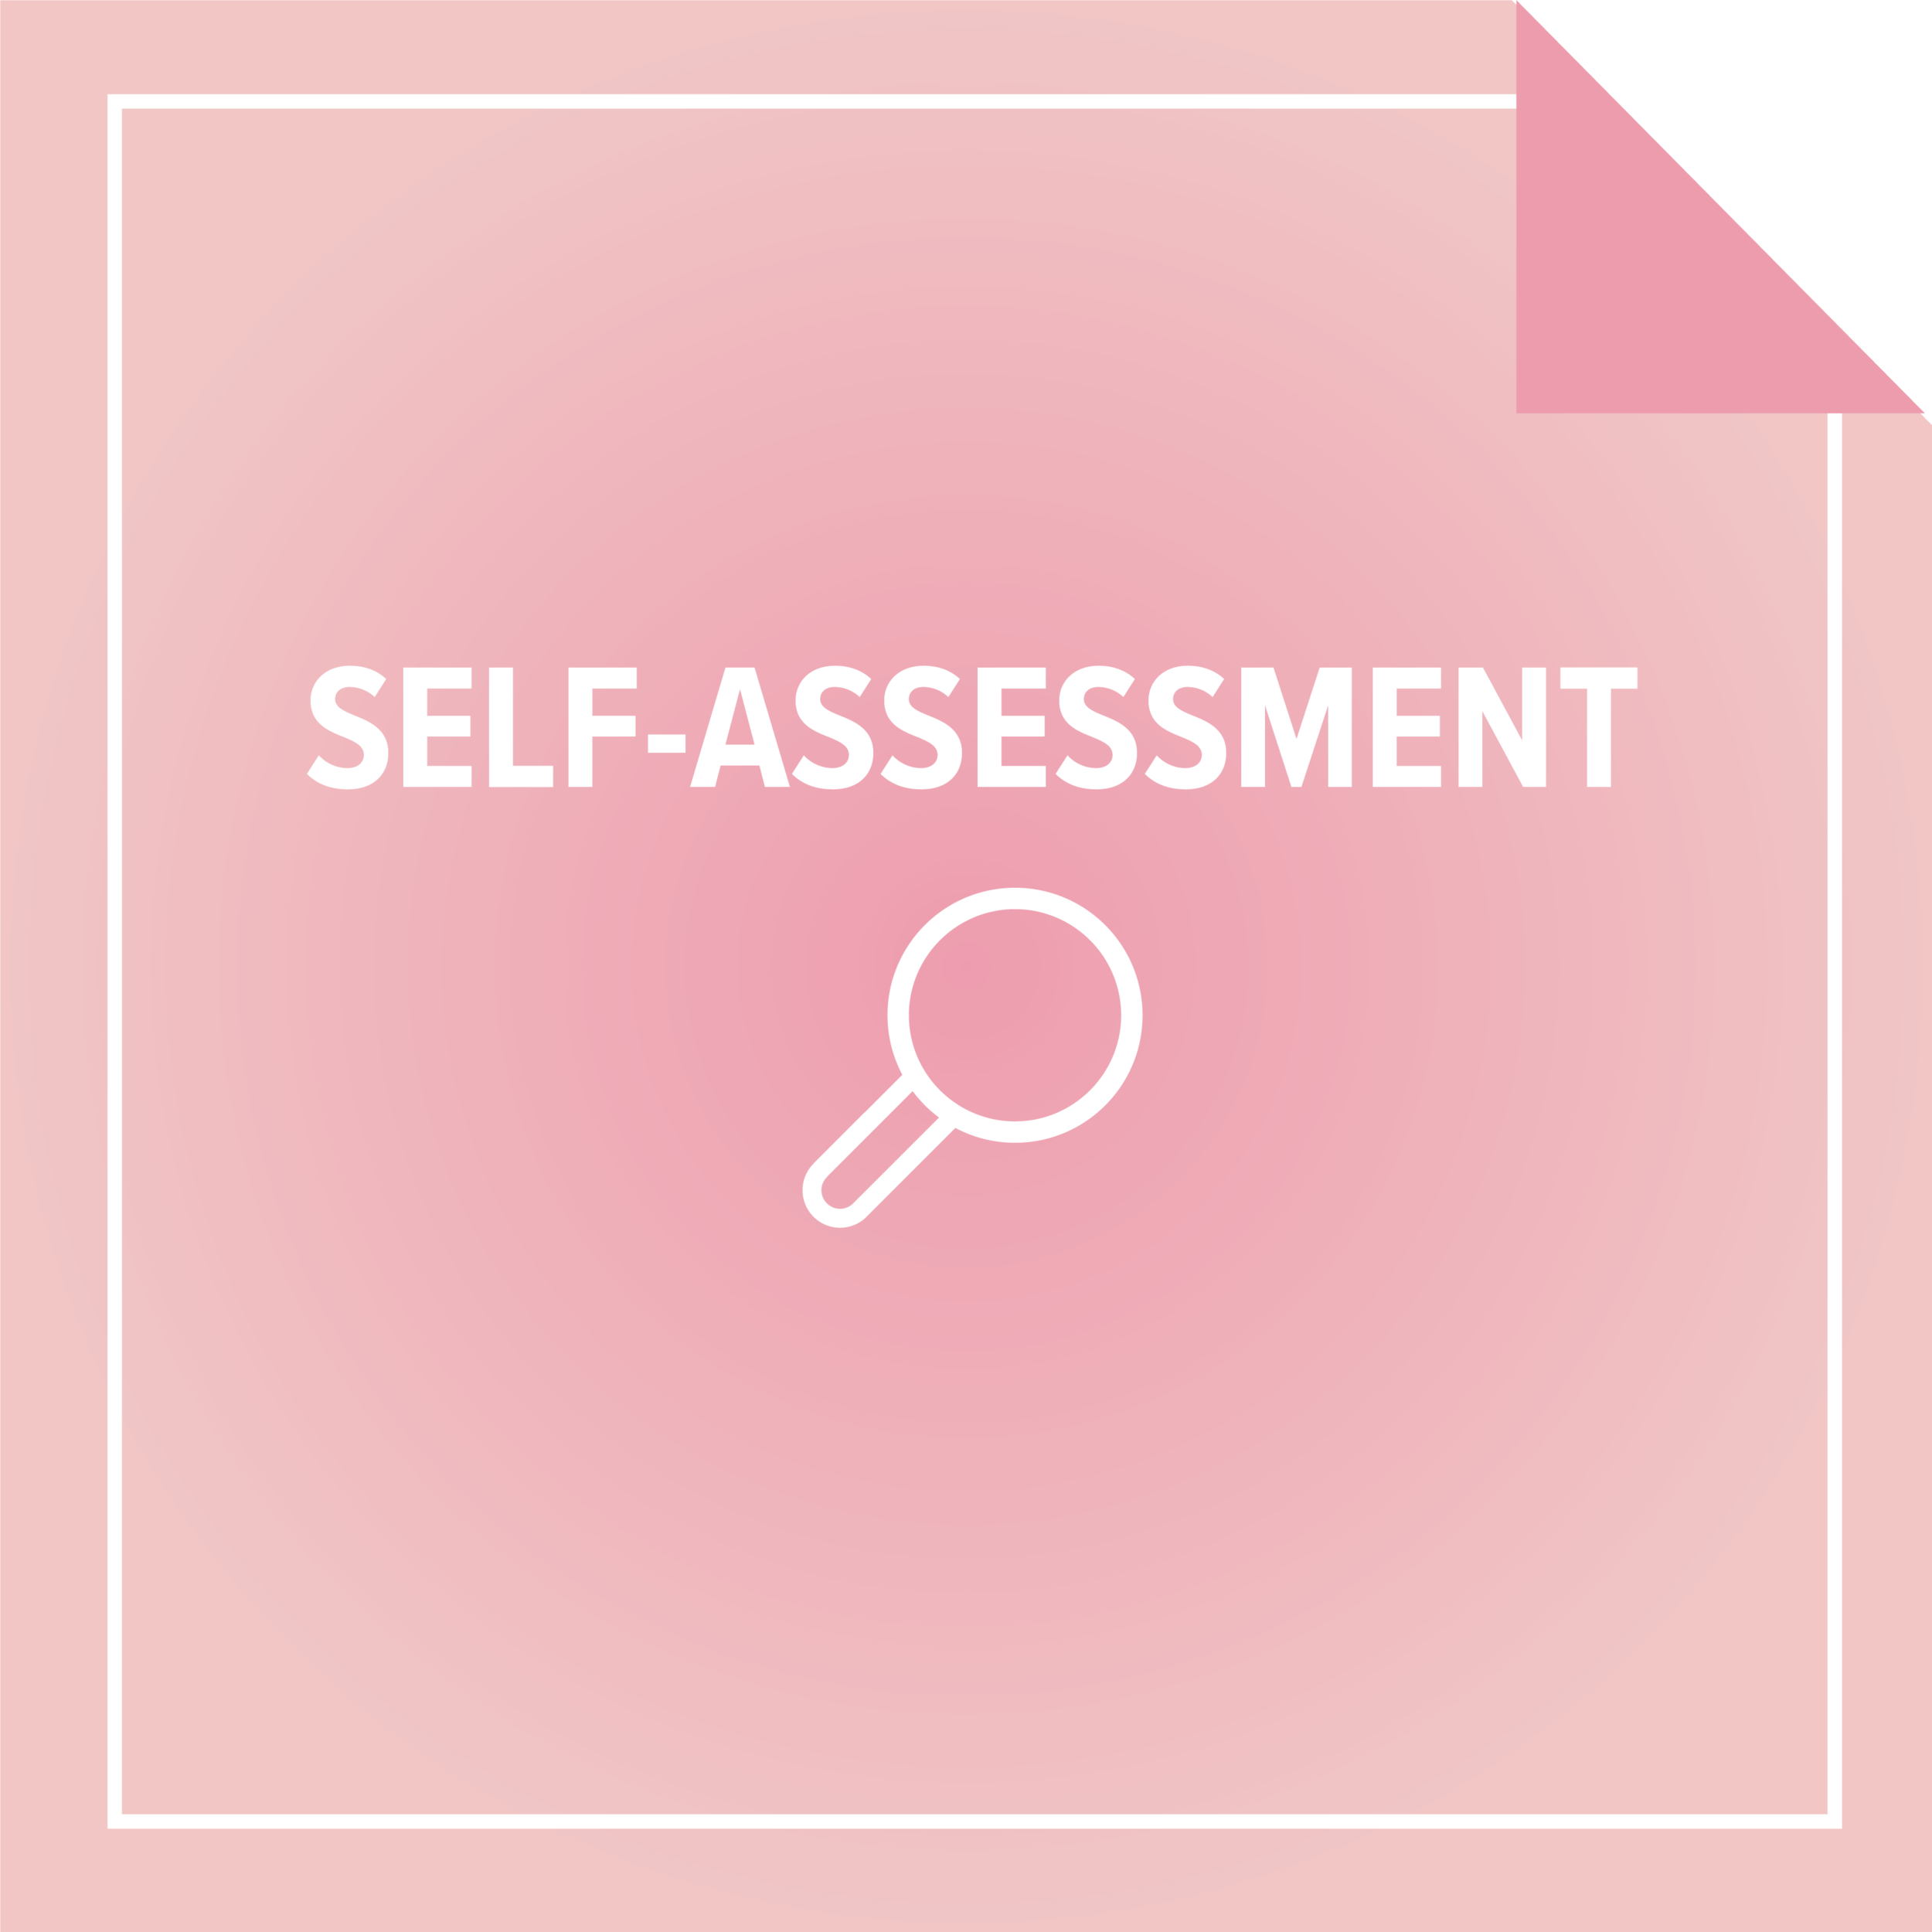 ACE_SelfAssessment-01.png